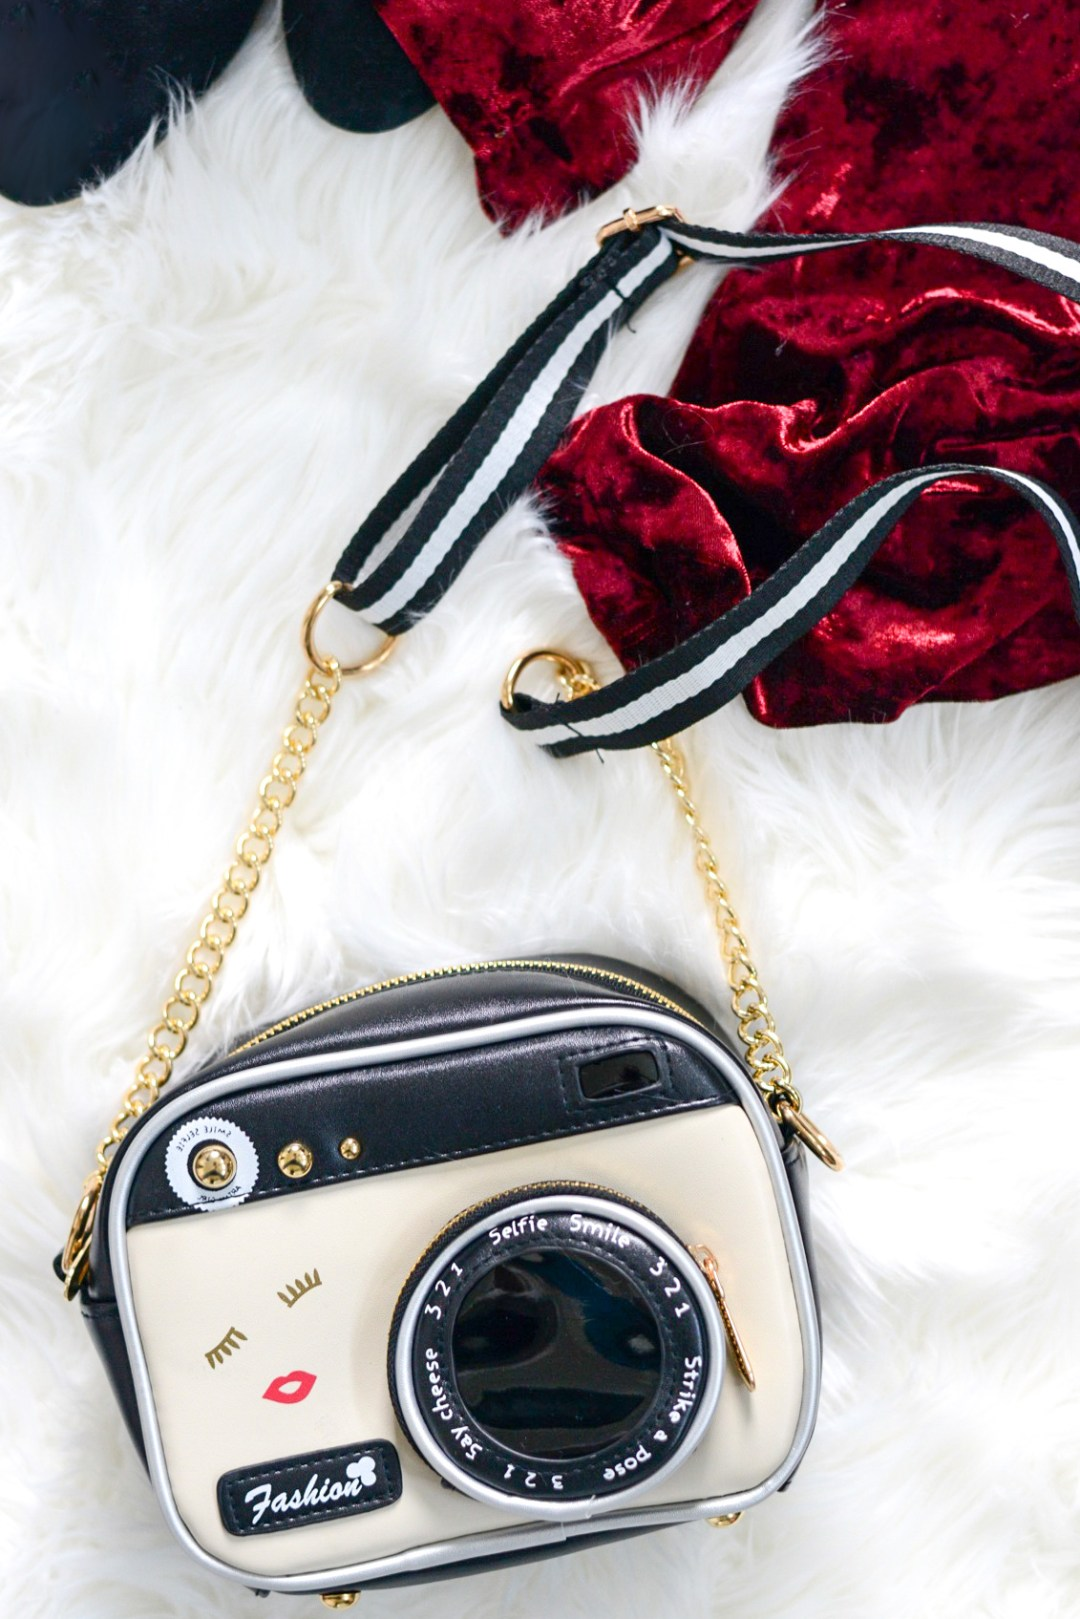 A Few Quick Gift Ideas for Girly Girls- Zaful camera purse